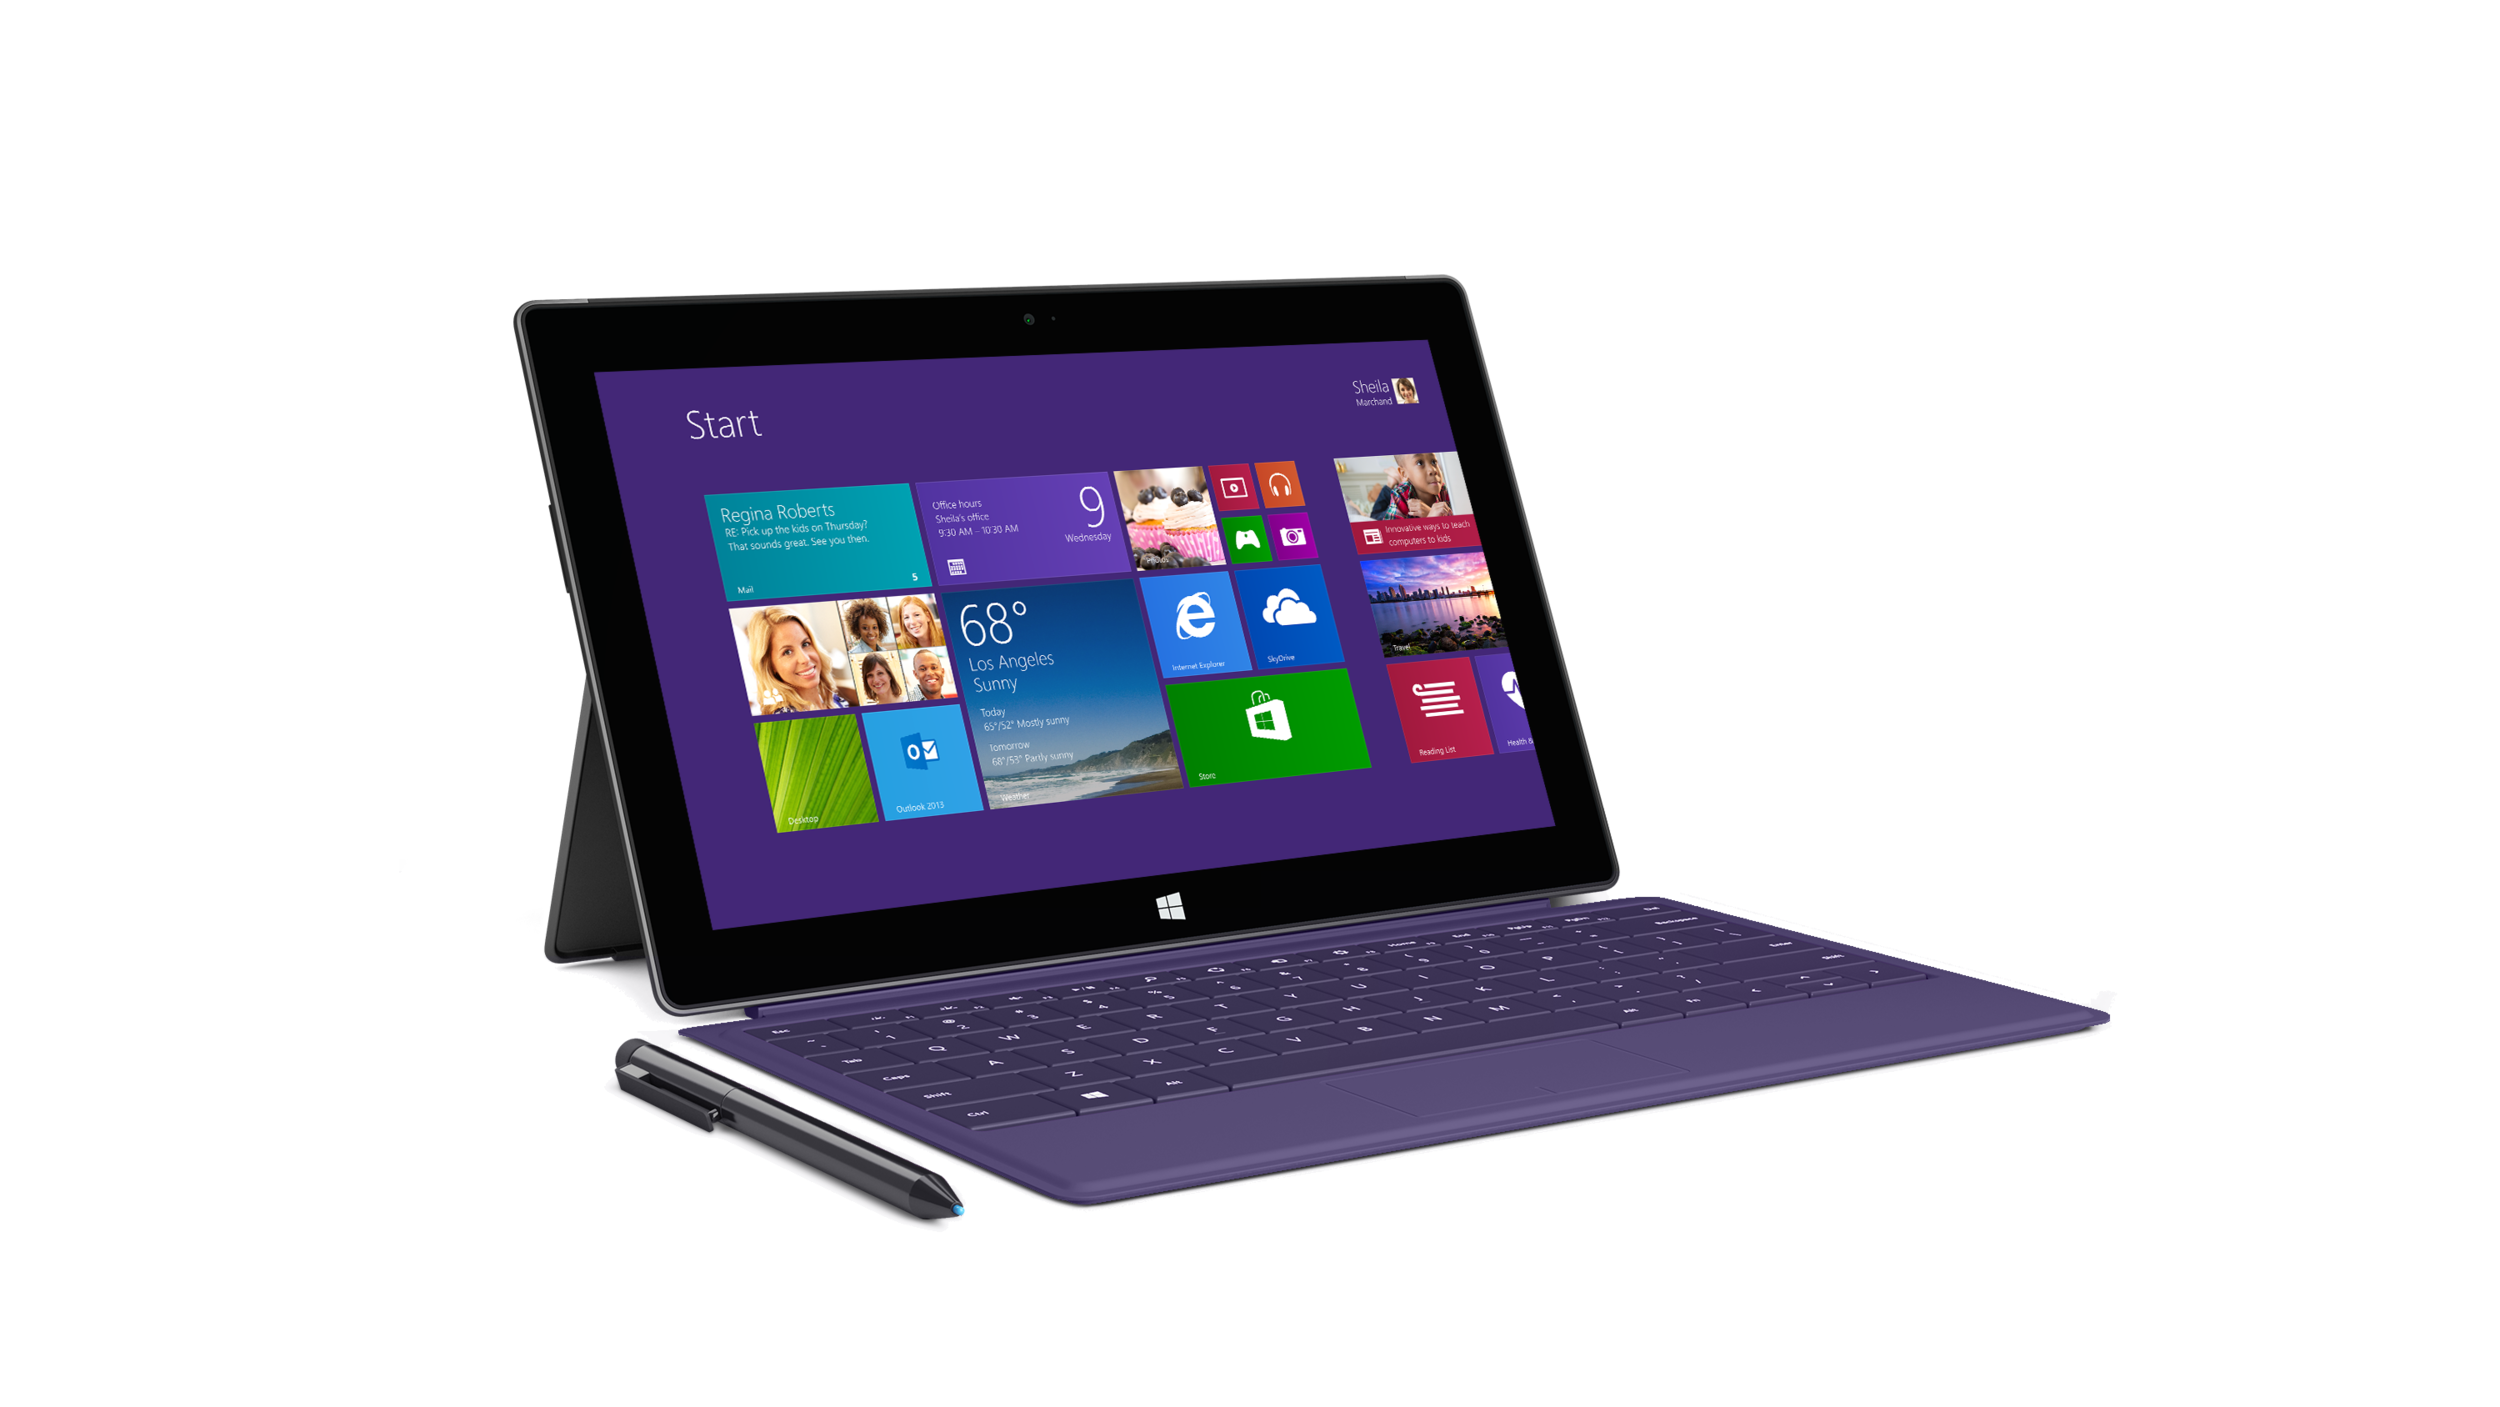 The Surface Pro 2. But, can it compete with the iPad and the long list of Android tablets?